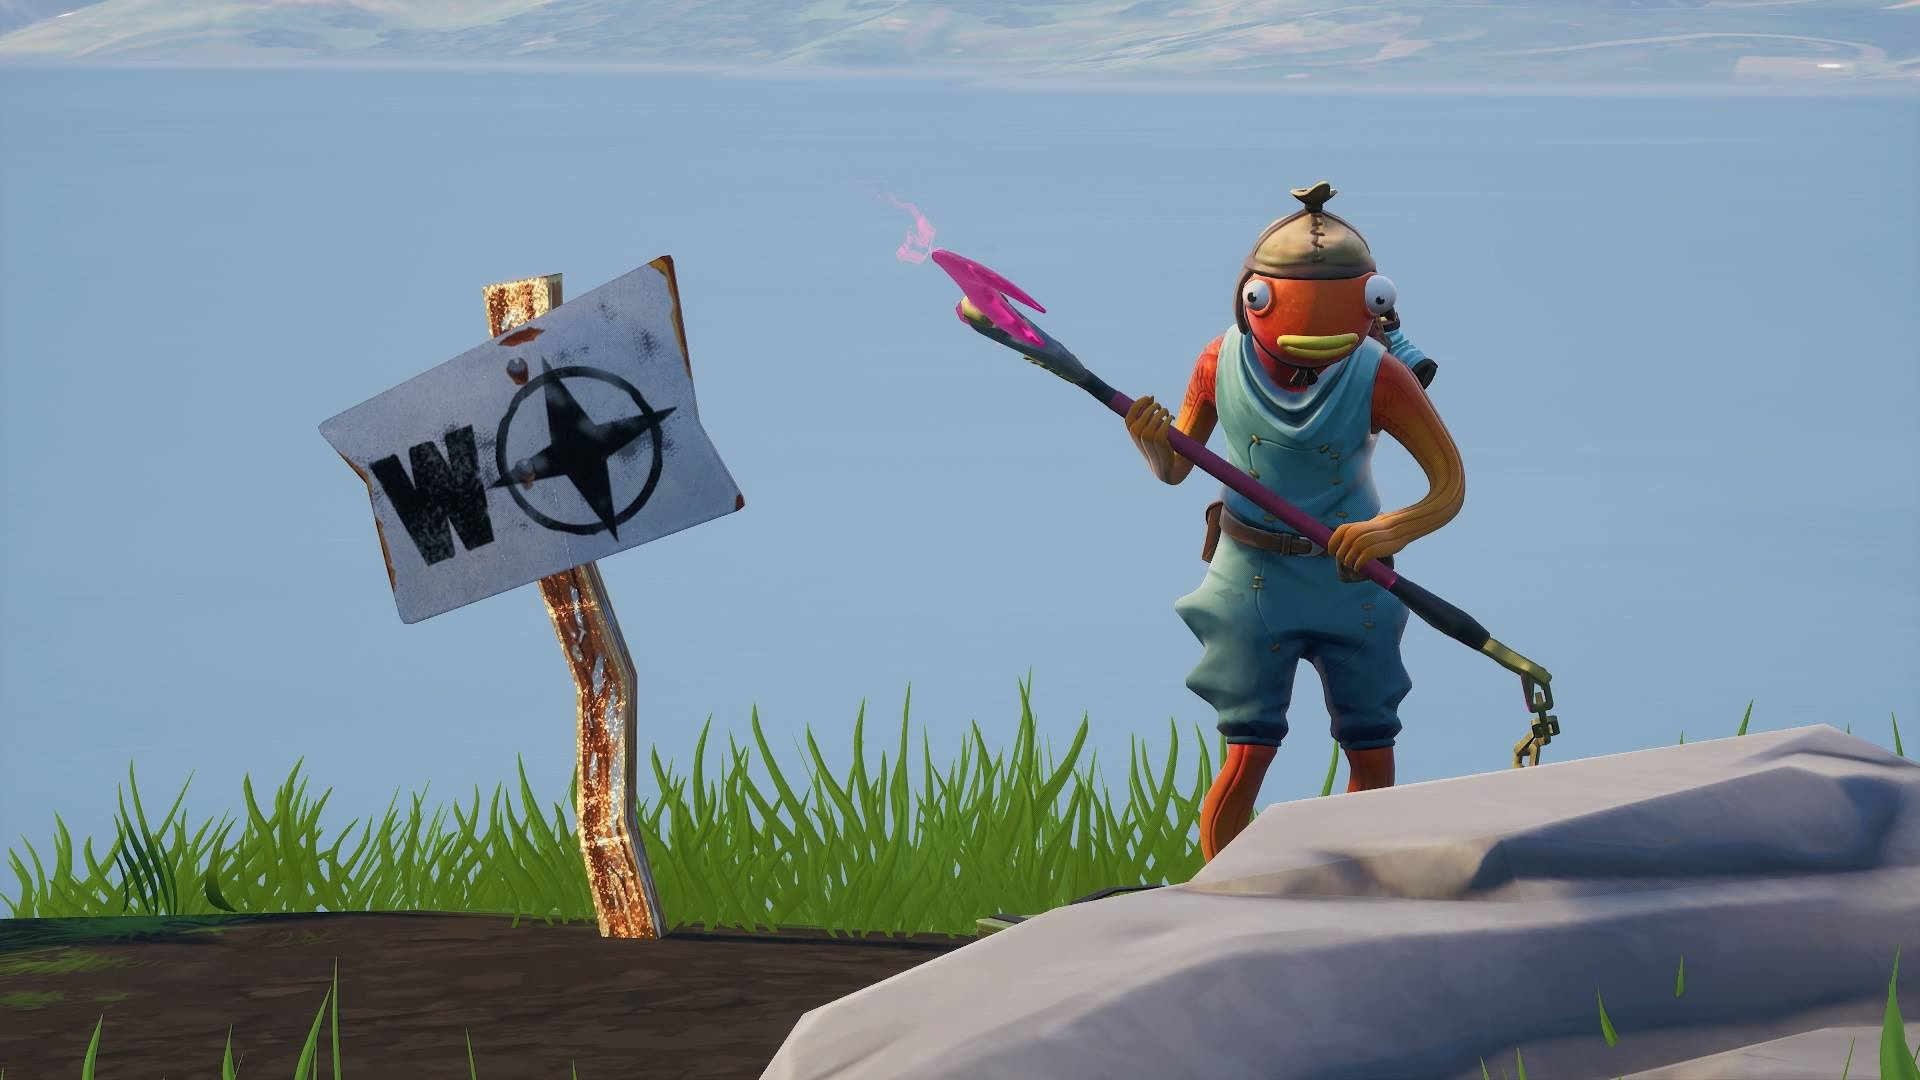 fortnite where to visit the furthest north south east and west points - visit the 5 highest elevations on the island fortnite season 8